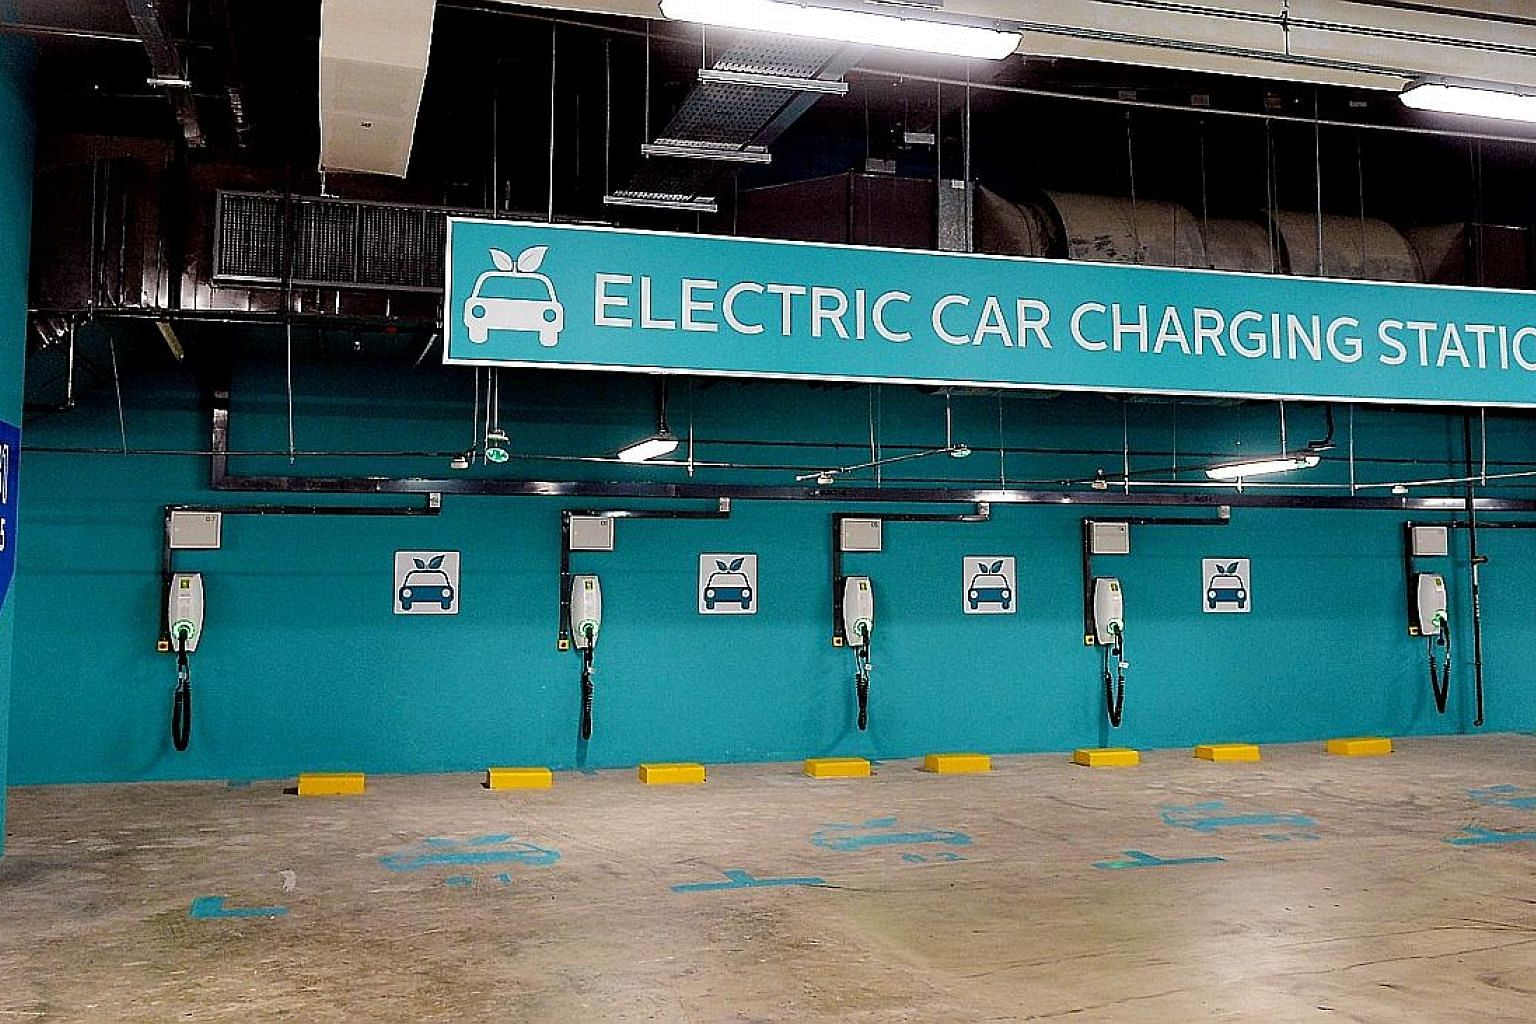 The electric car charging stations at Our Tampines Hub. Land Transport Authority figures show the number of fully-electric and plug-in hybrid cars growing from 137 two years ago to 592 as of April.